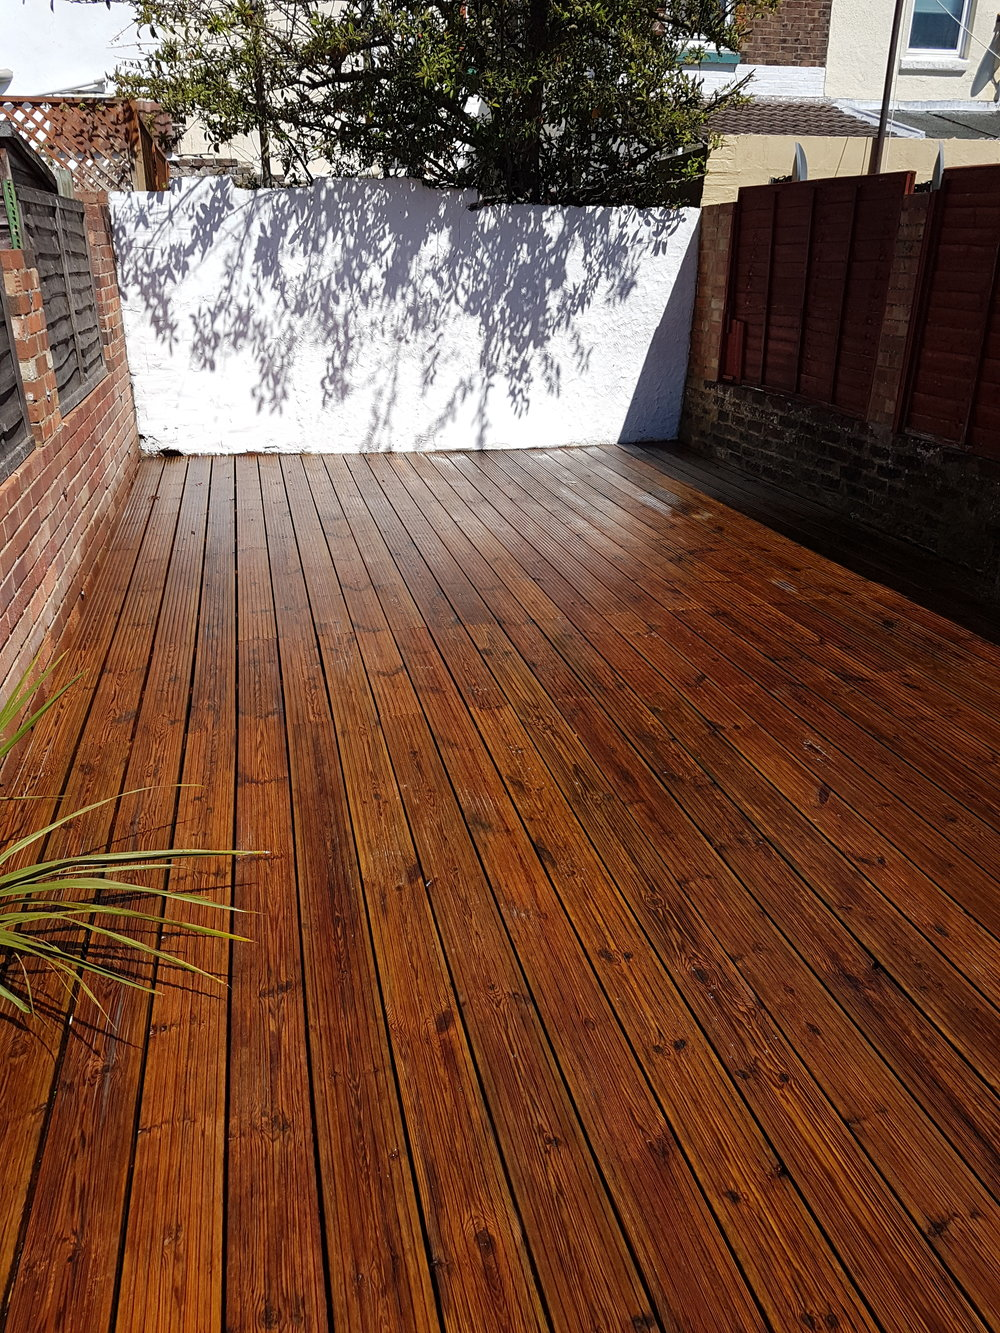 Decking and cover